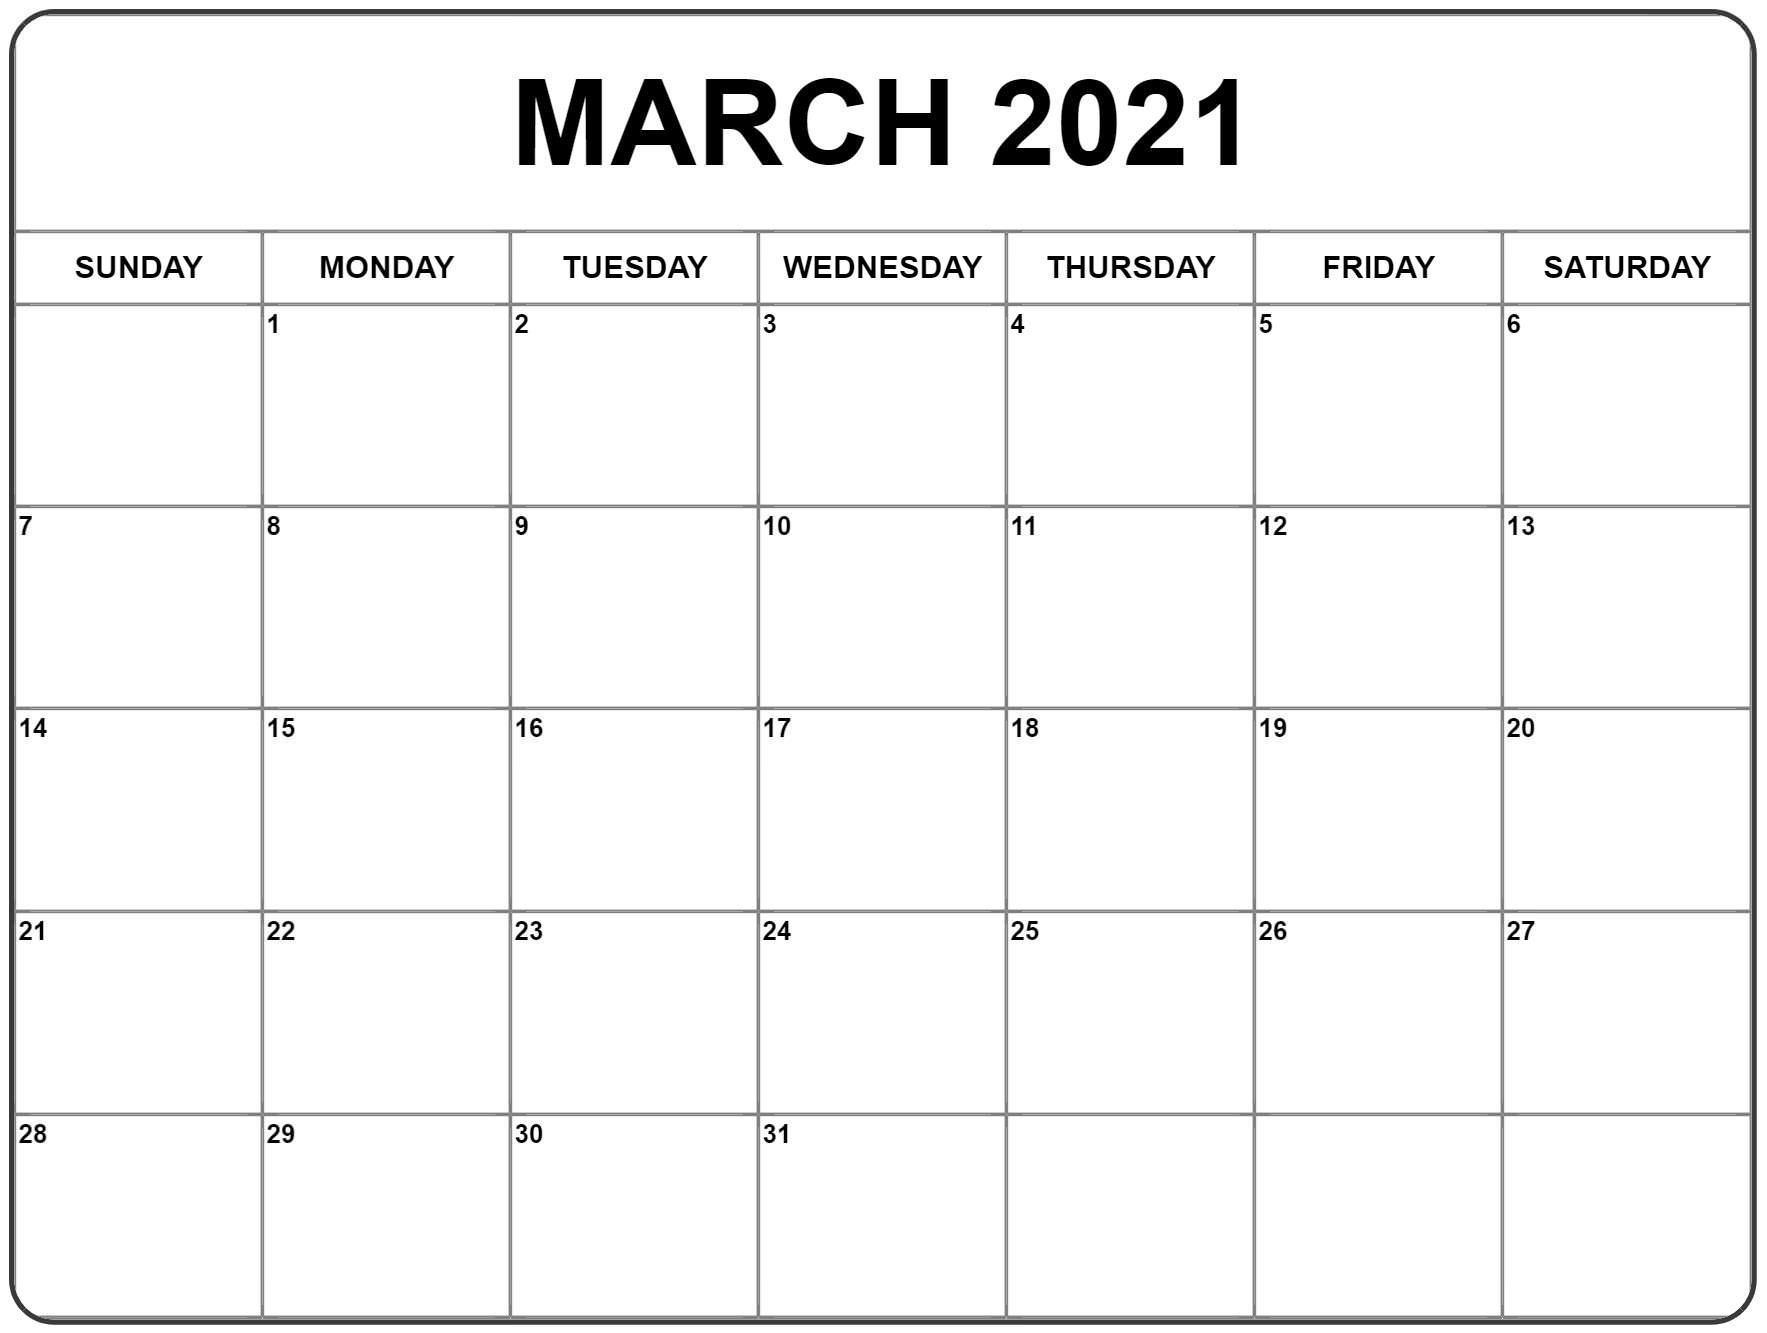 March 2021 Calendar | Free Printable Calendar Templates